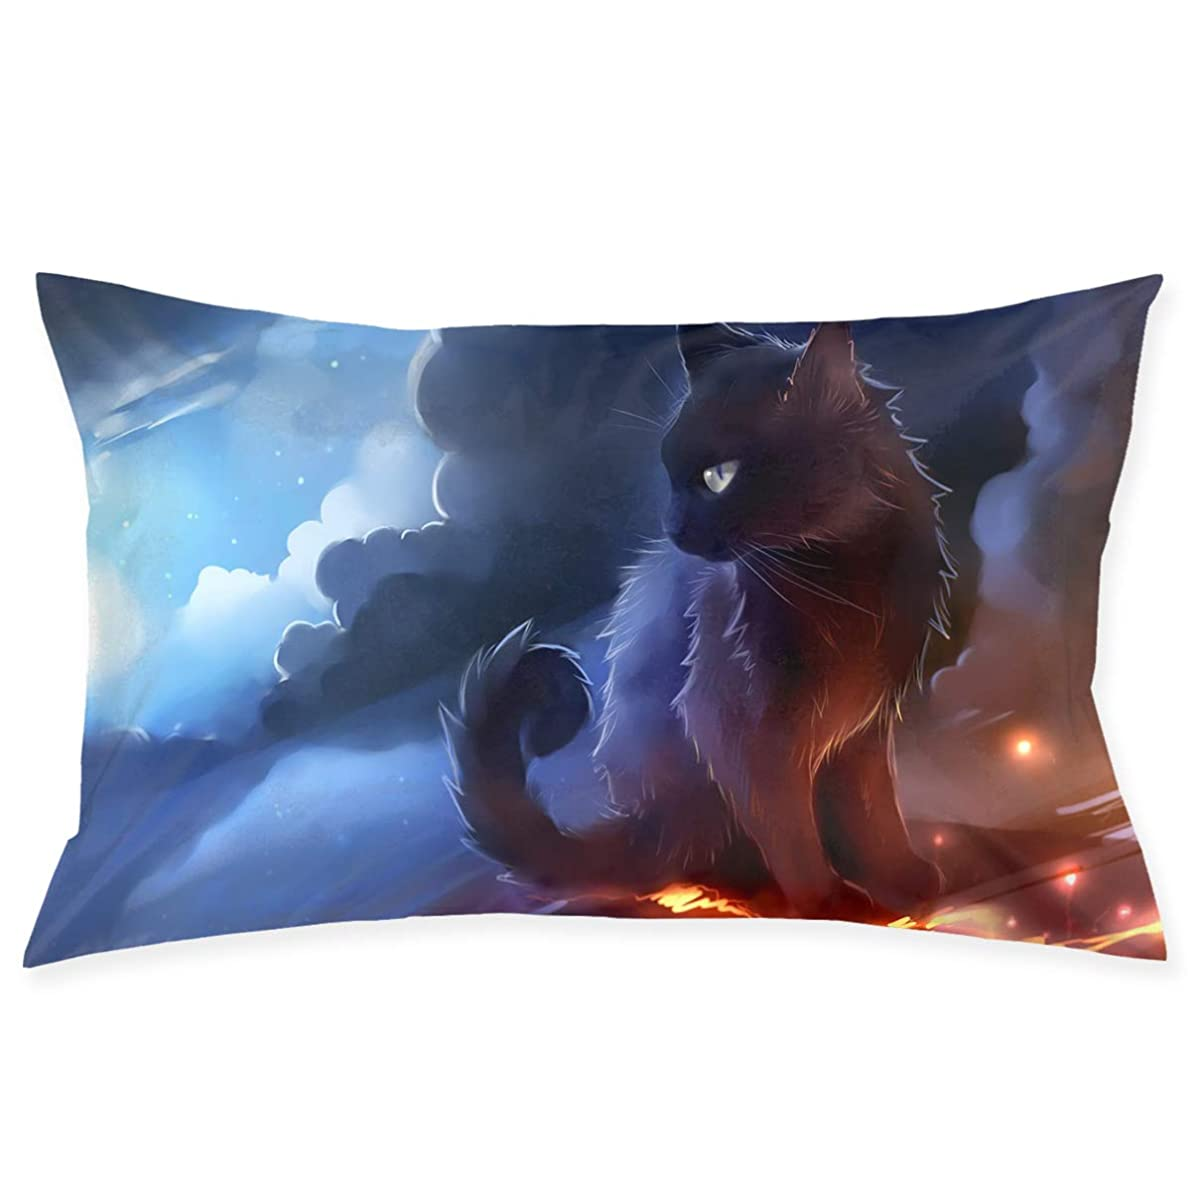 SKYISOK Cat Warrior Pillowcases Decorative Pillow Covers Soft and Cozy, Standard Size 20